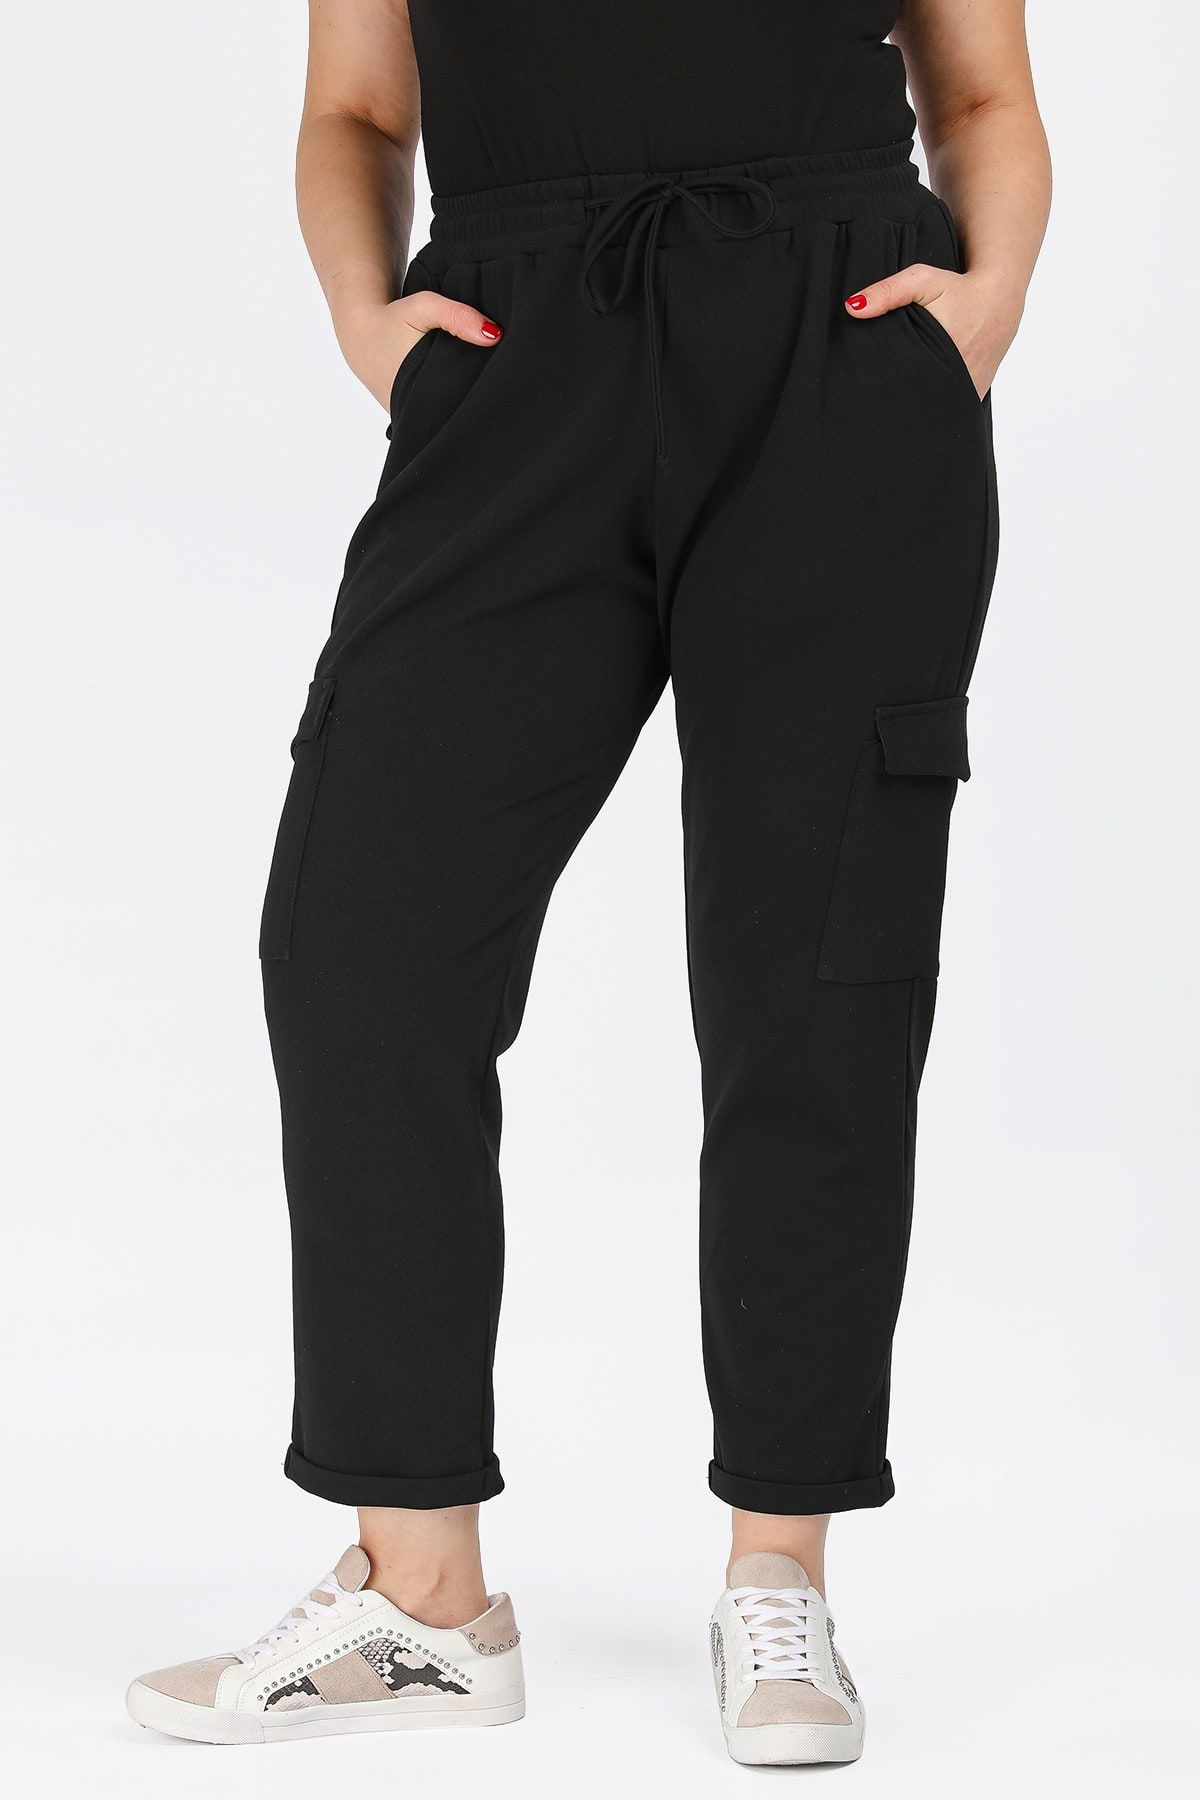 Trousers in cargo style